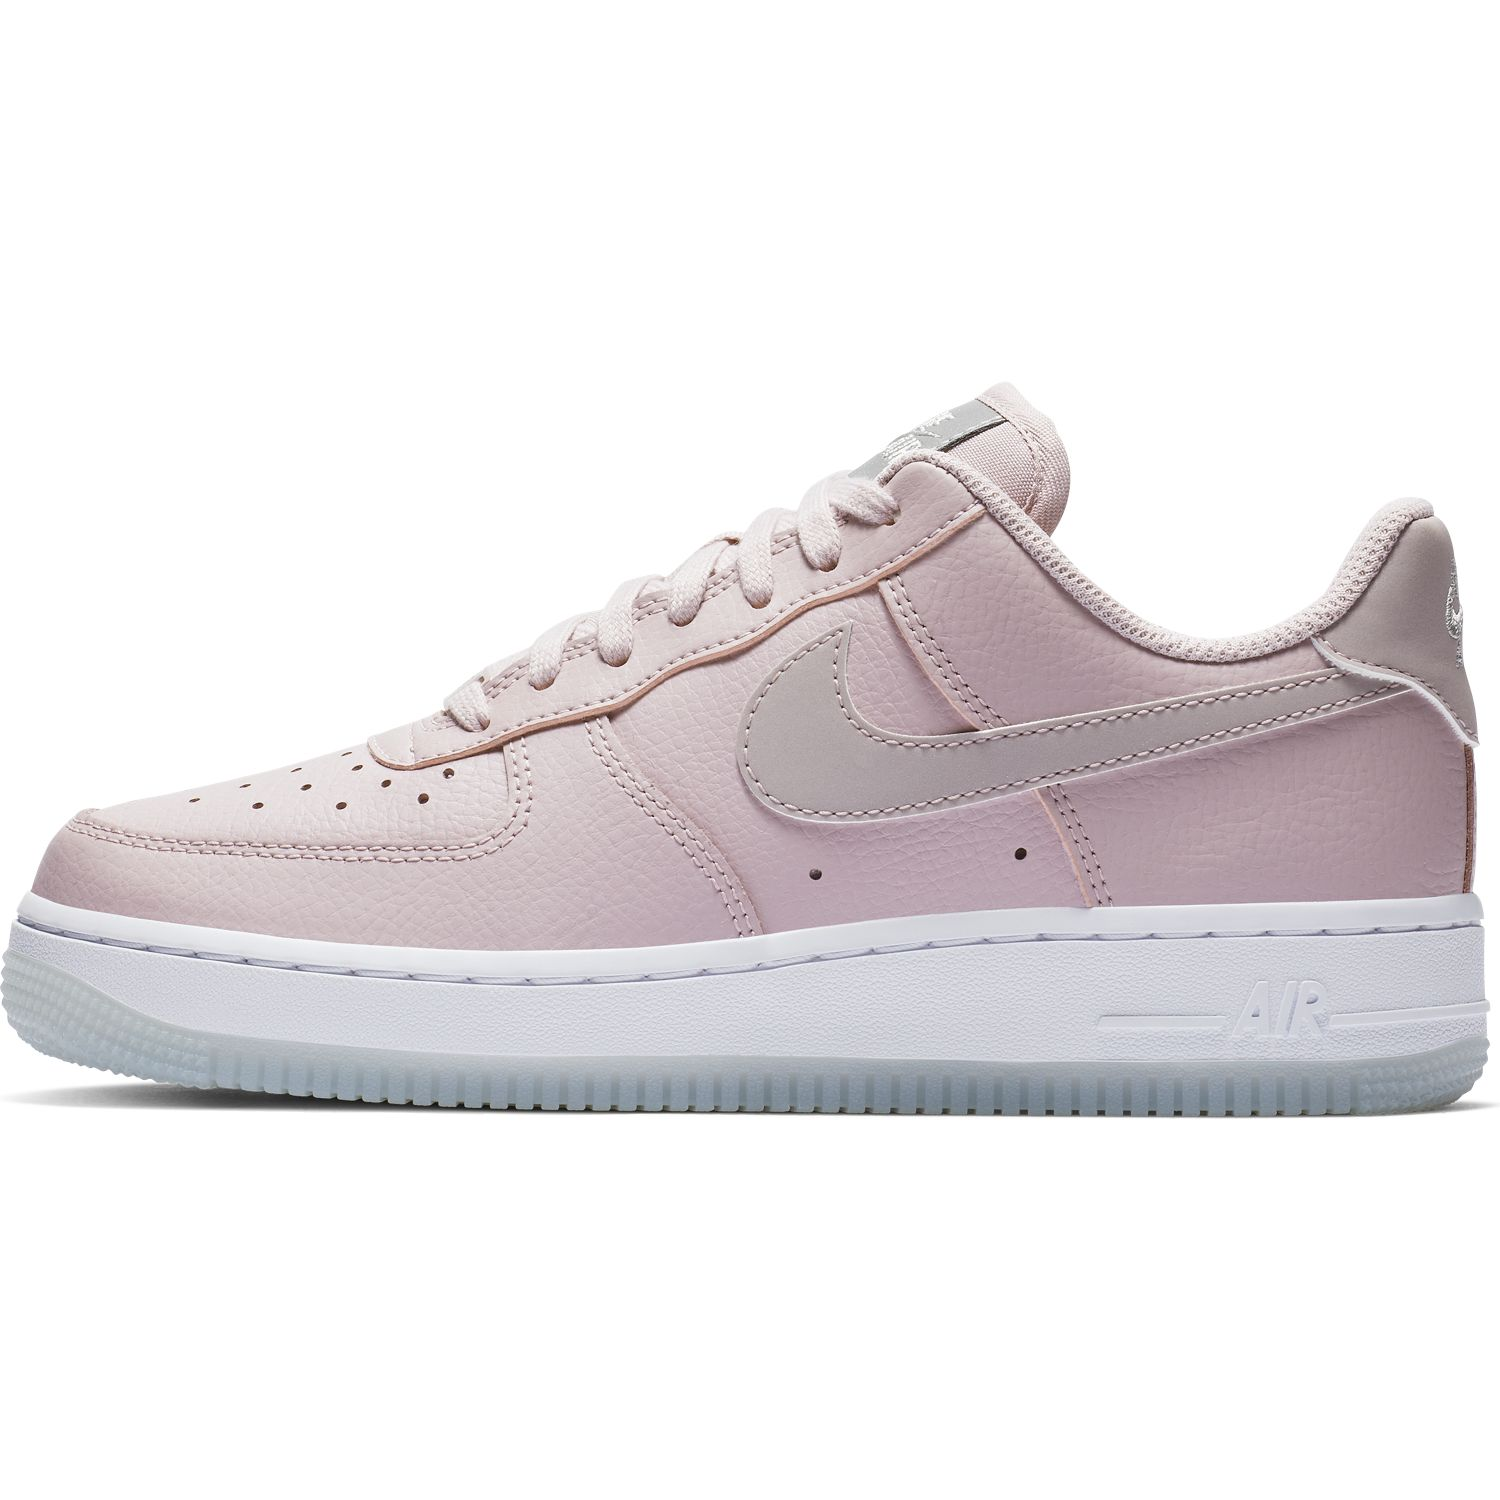 buy popular eb9a1 630ce ... BUTY DAMSKIE NIKE AIR FORCE 1 07 ESSENTIAL FIOLETOWE AO2132-500 ...